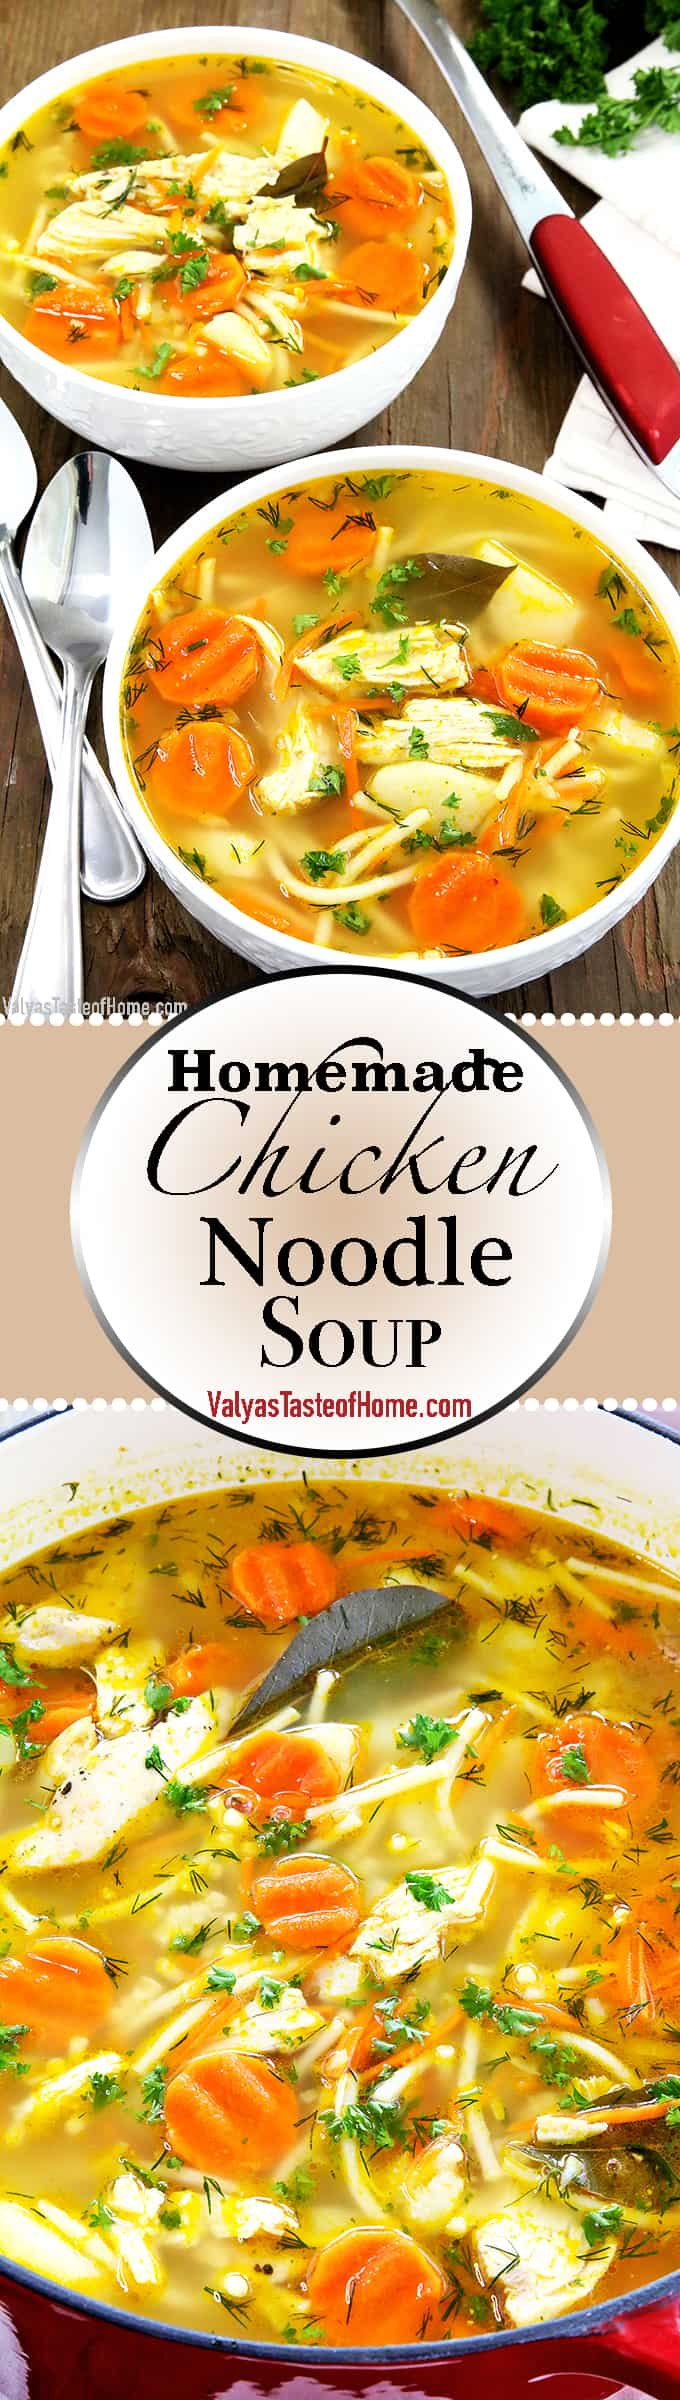 What can be better than a hot bowl of Homemade Chicken Noodle Soup on a chilly Fall day? Ok, maybe a weekend, plus this savory soup, plus a crisp and colorful fall day. #chickennoodlesoup #homemadechickennoodlesoup #familyfavorite #comfortfoods